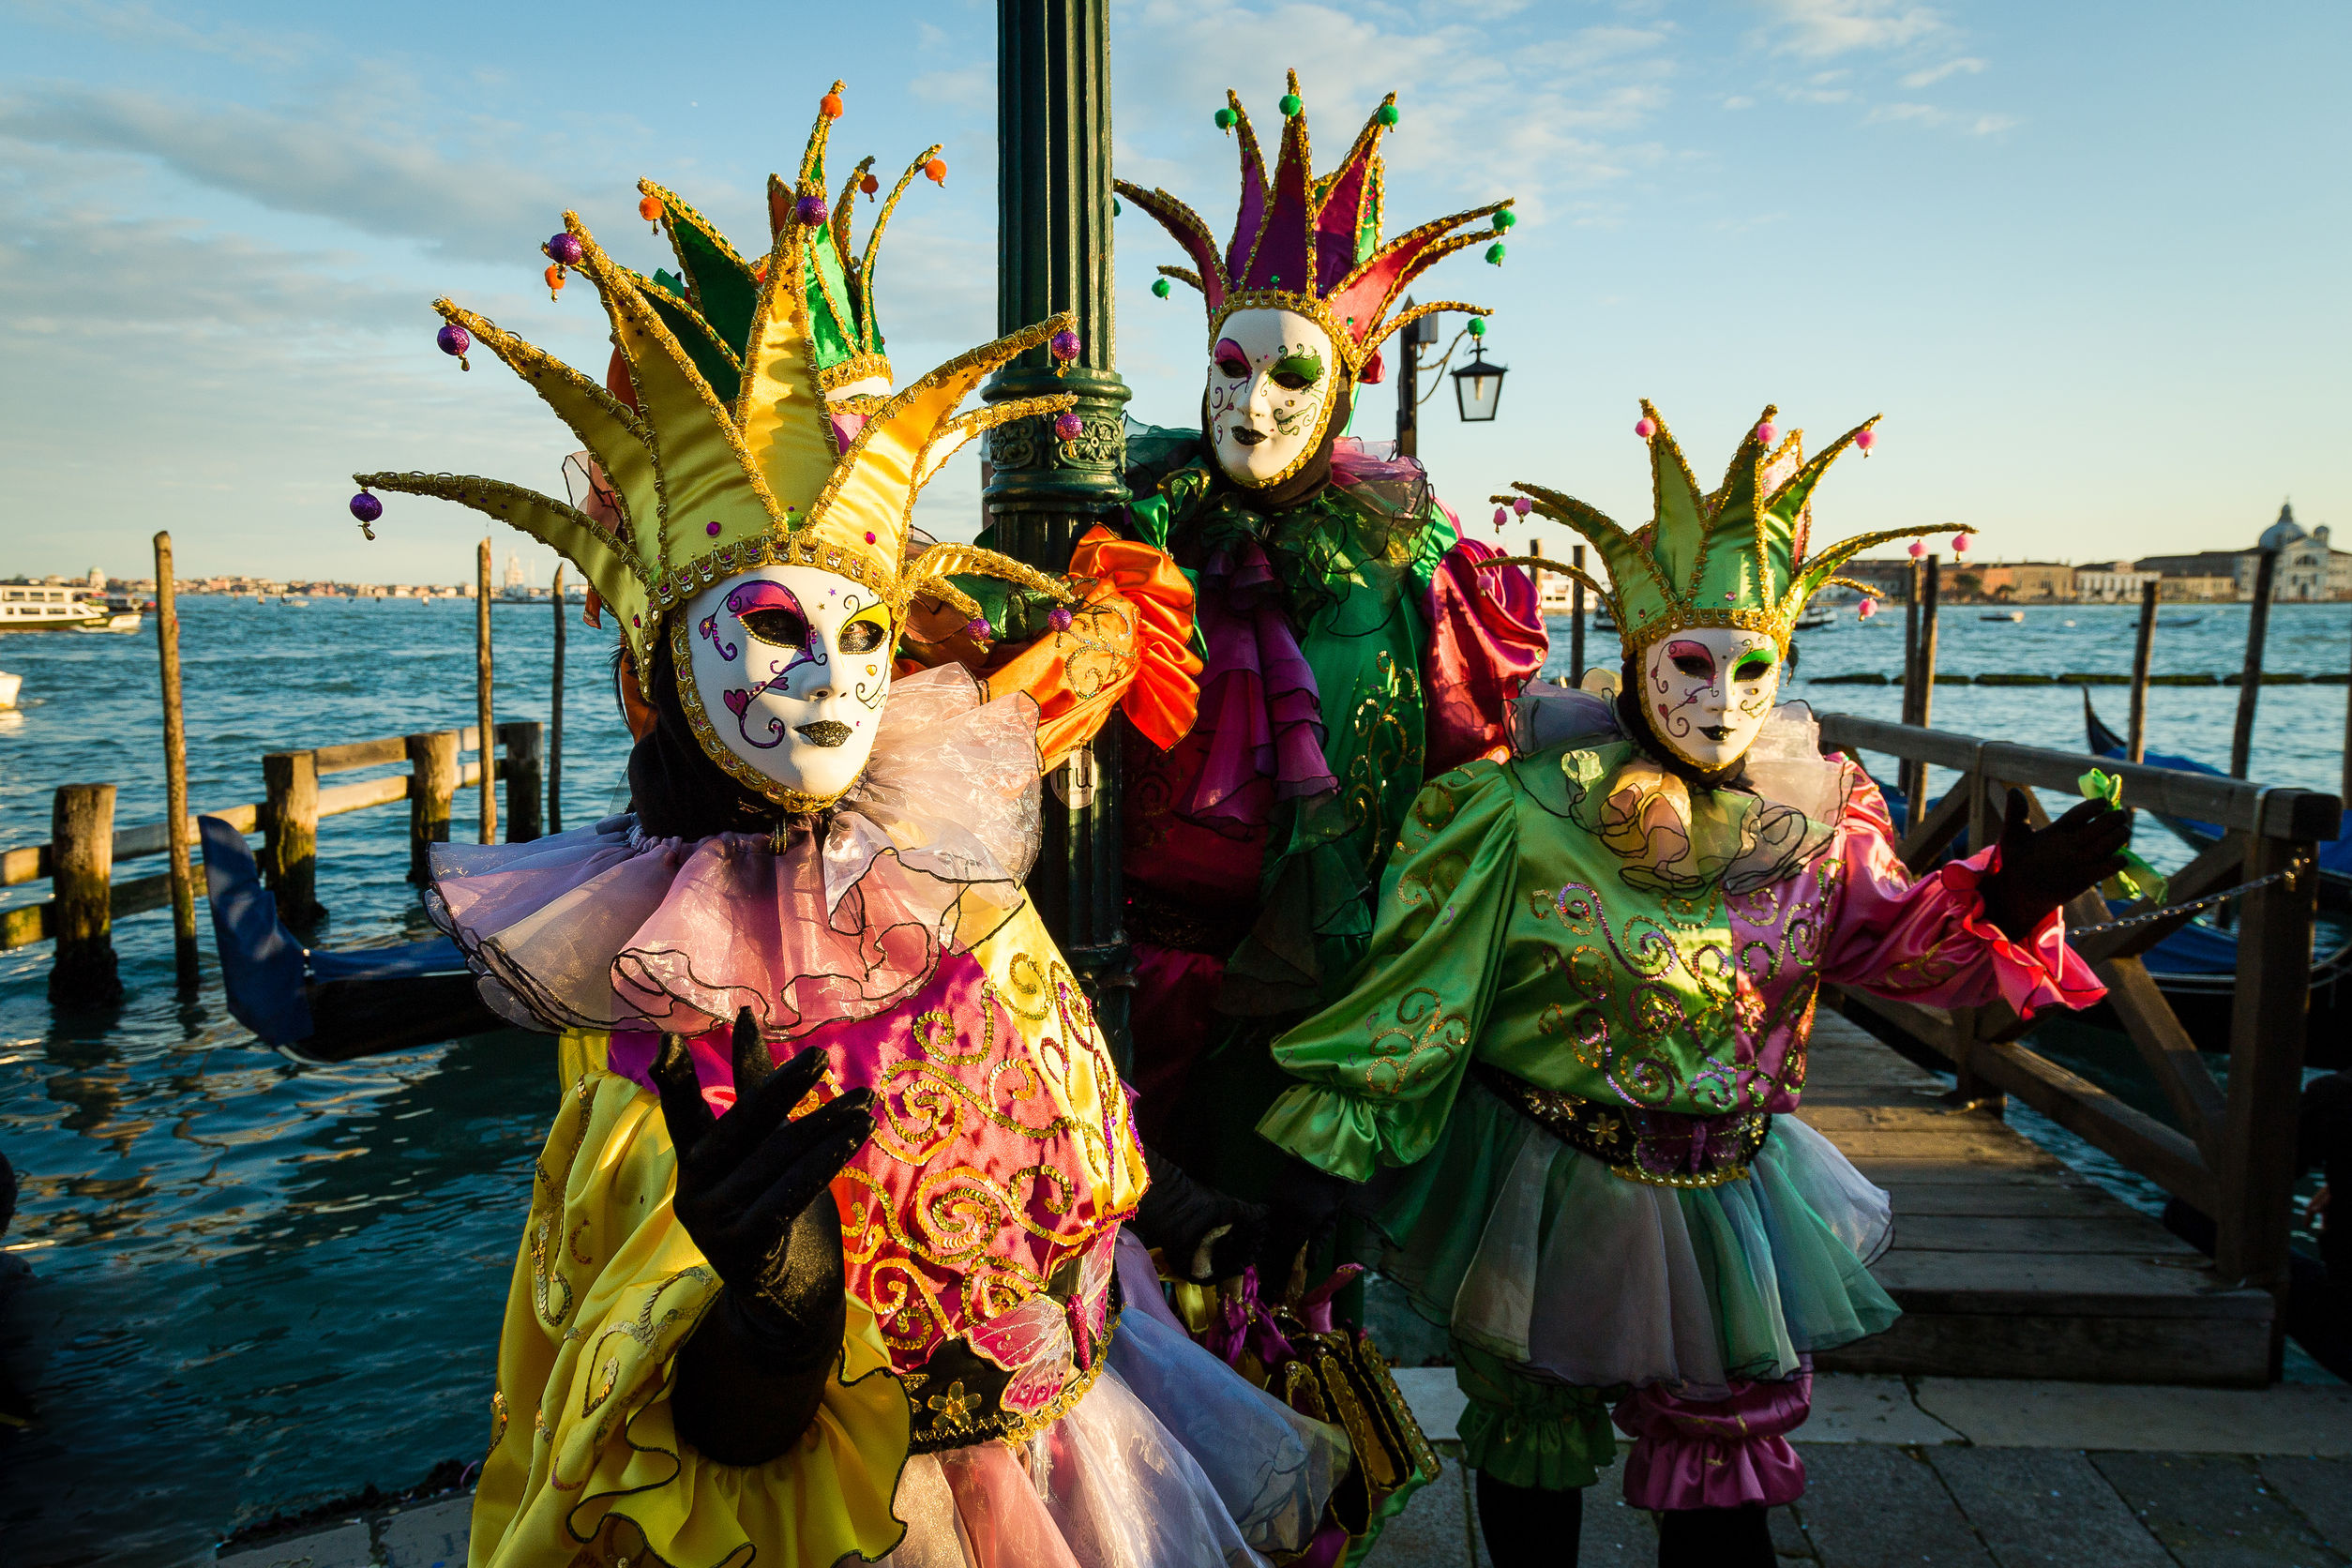 Venice Carnival: The Festival of Disguise & More